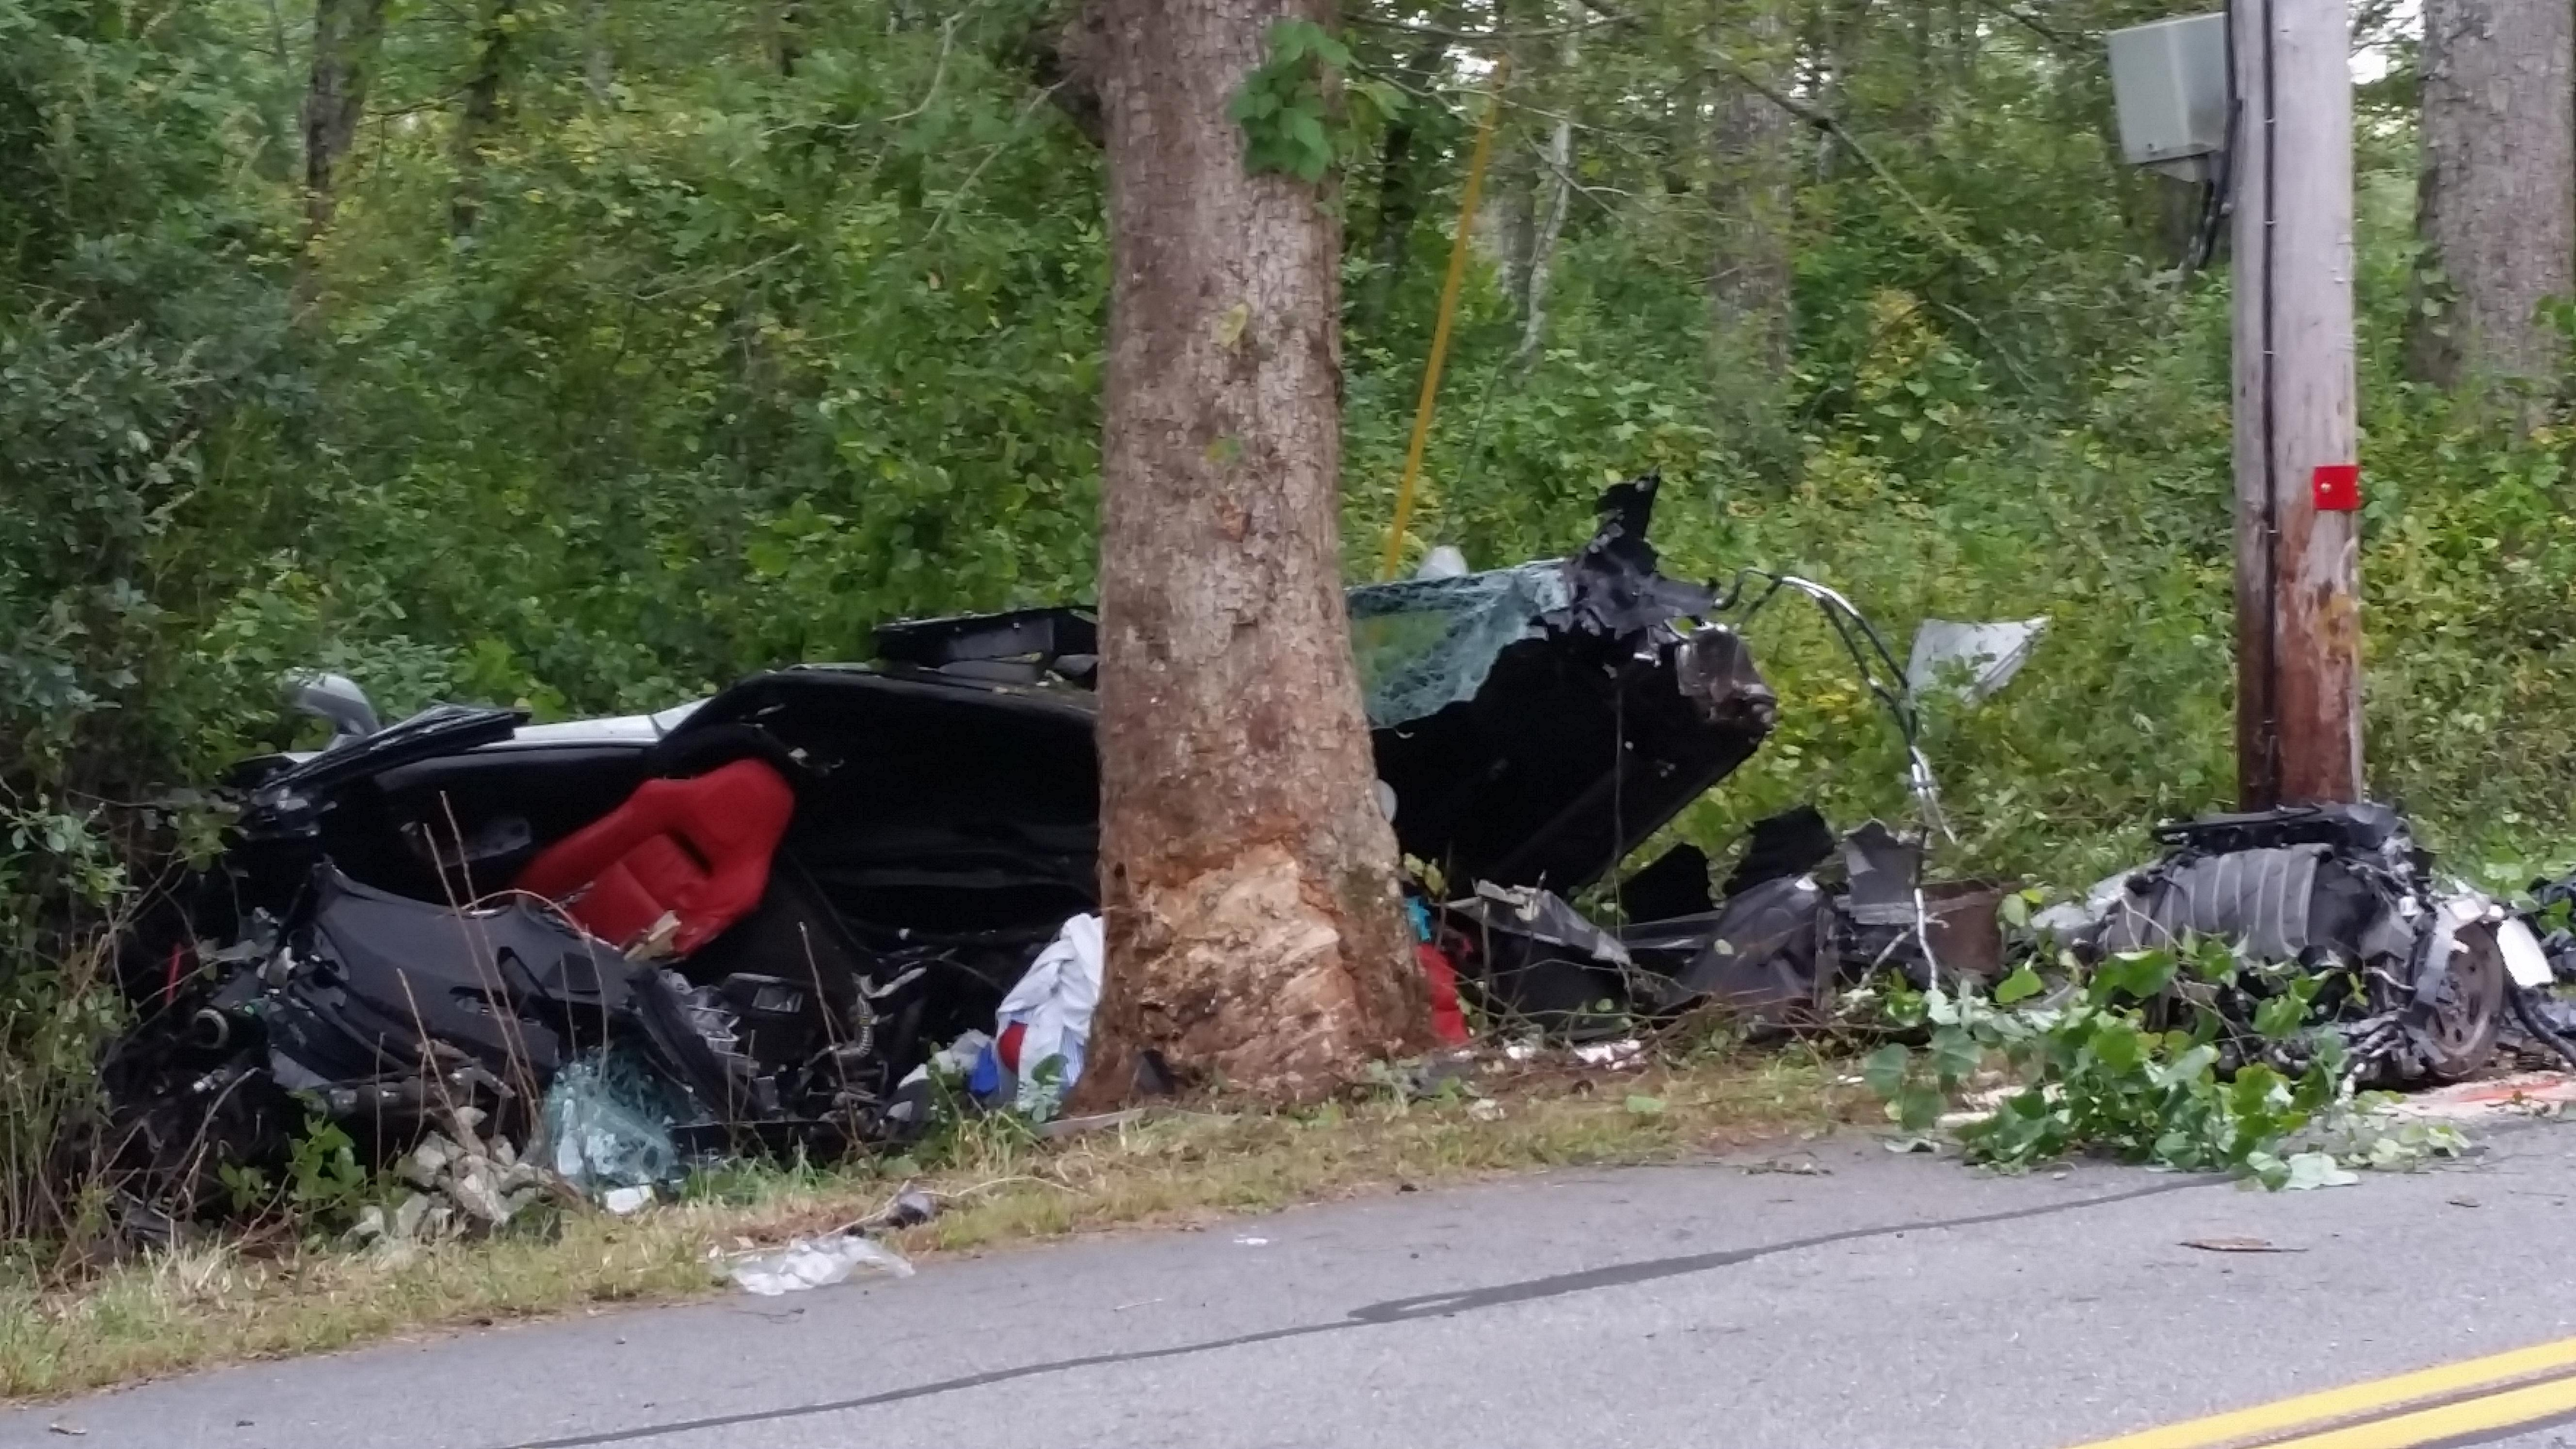 A person was killed on a single-car crash in South Kingstown on Monday, Sept. 18, 2017. (WJAR)